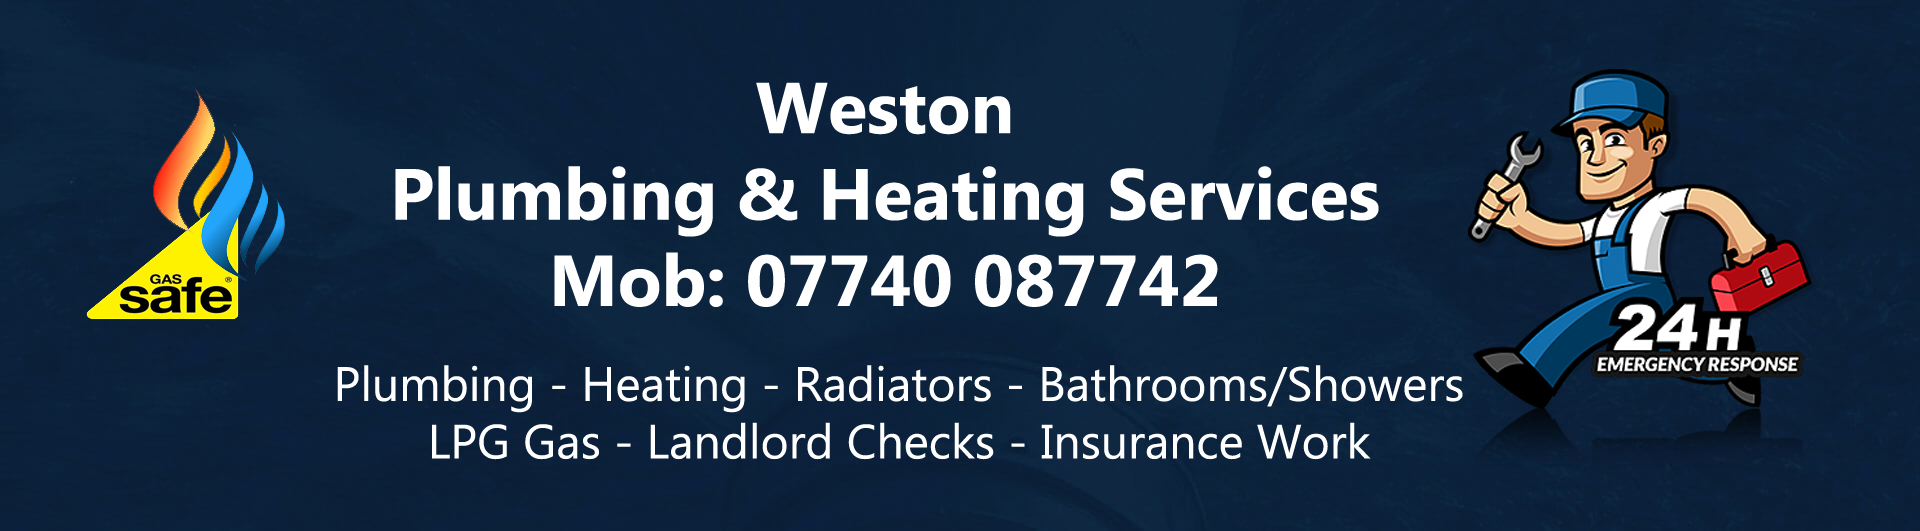 Weston-Plumbing-and-Heating-New-Business Services